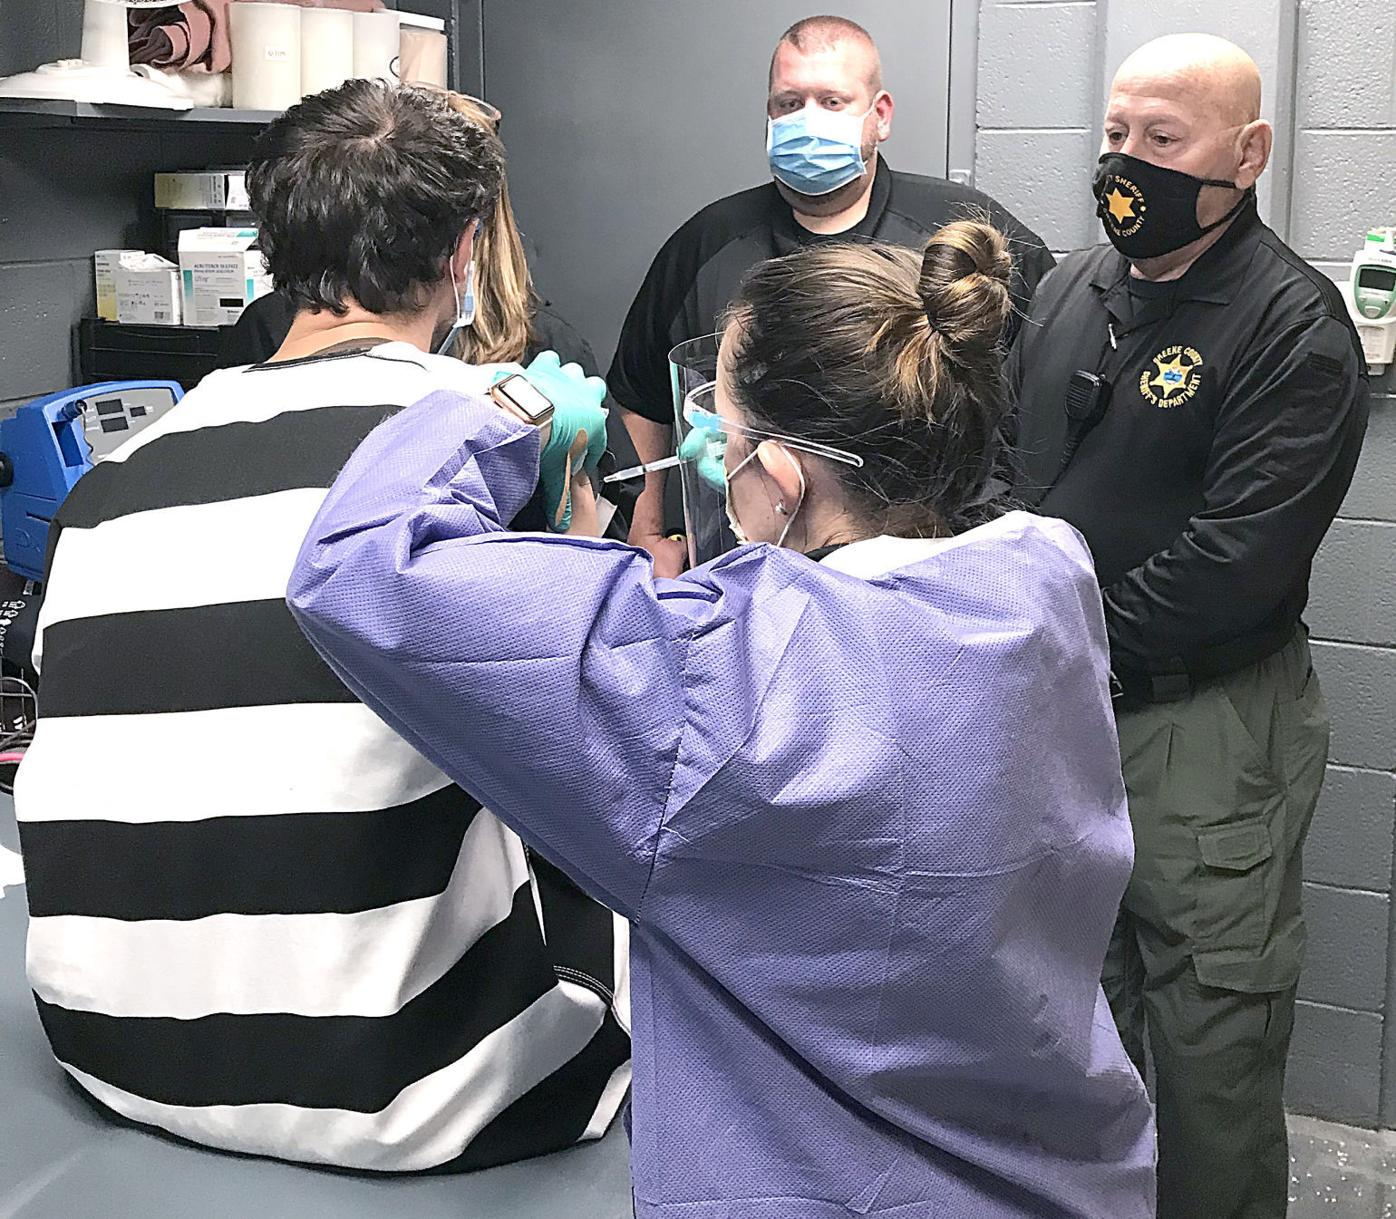 Jail Inmate Gets COVID-19 Vaccine Shot